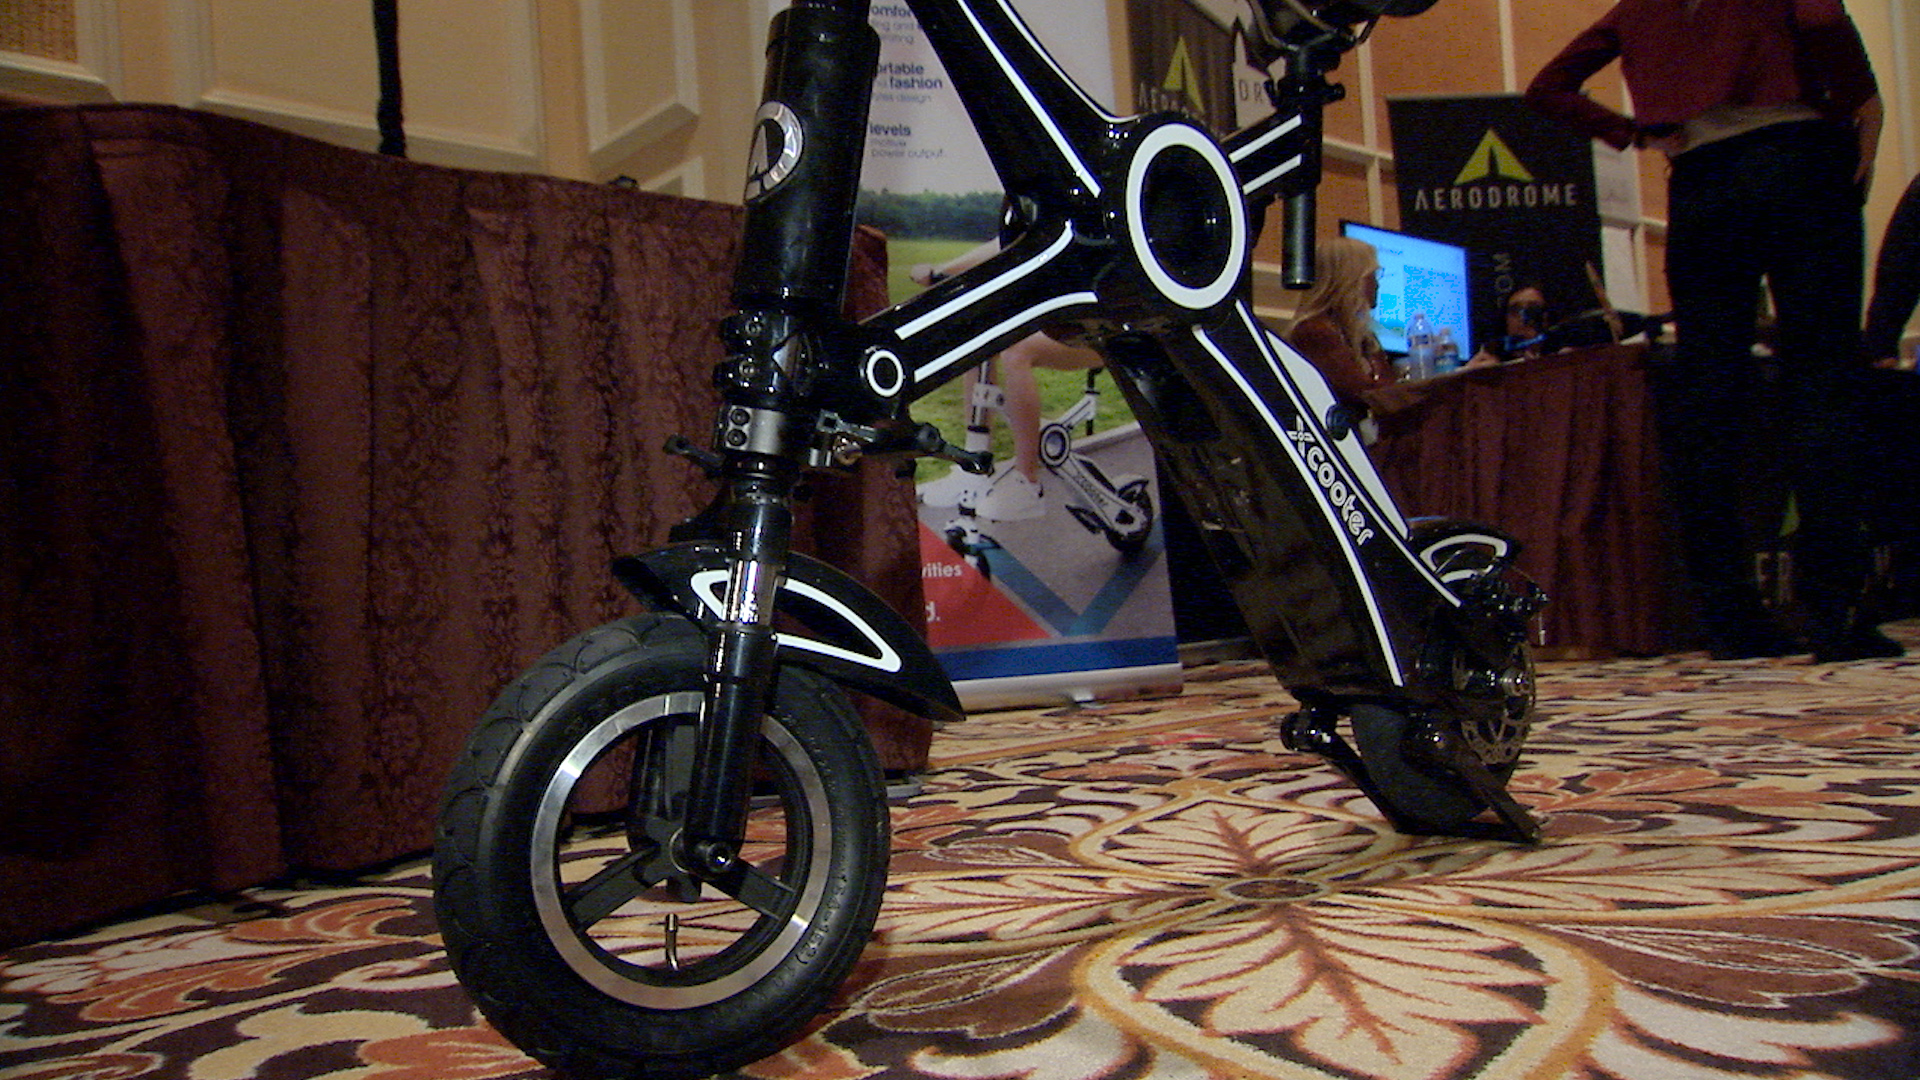 Video: This fast, foldable scooter brings the X-factor to your commute